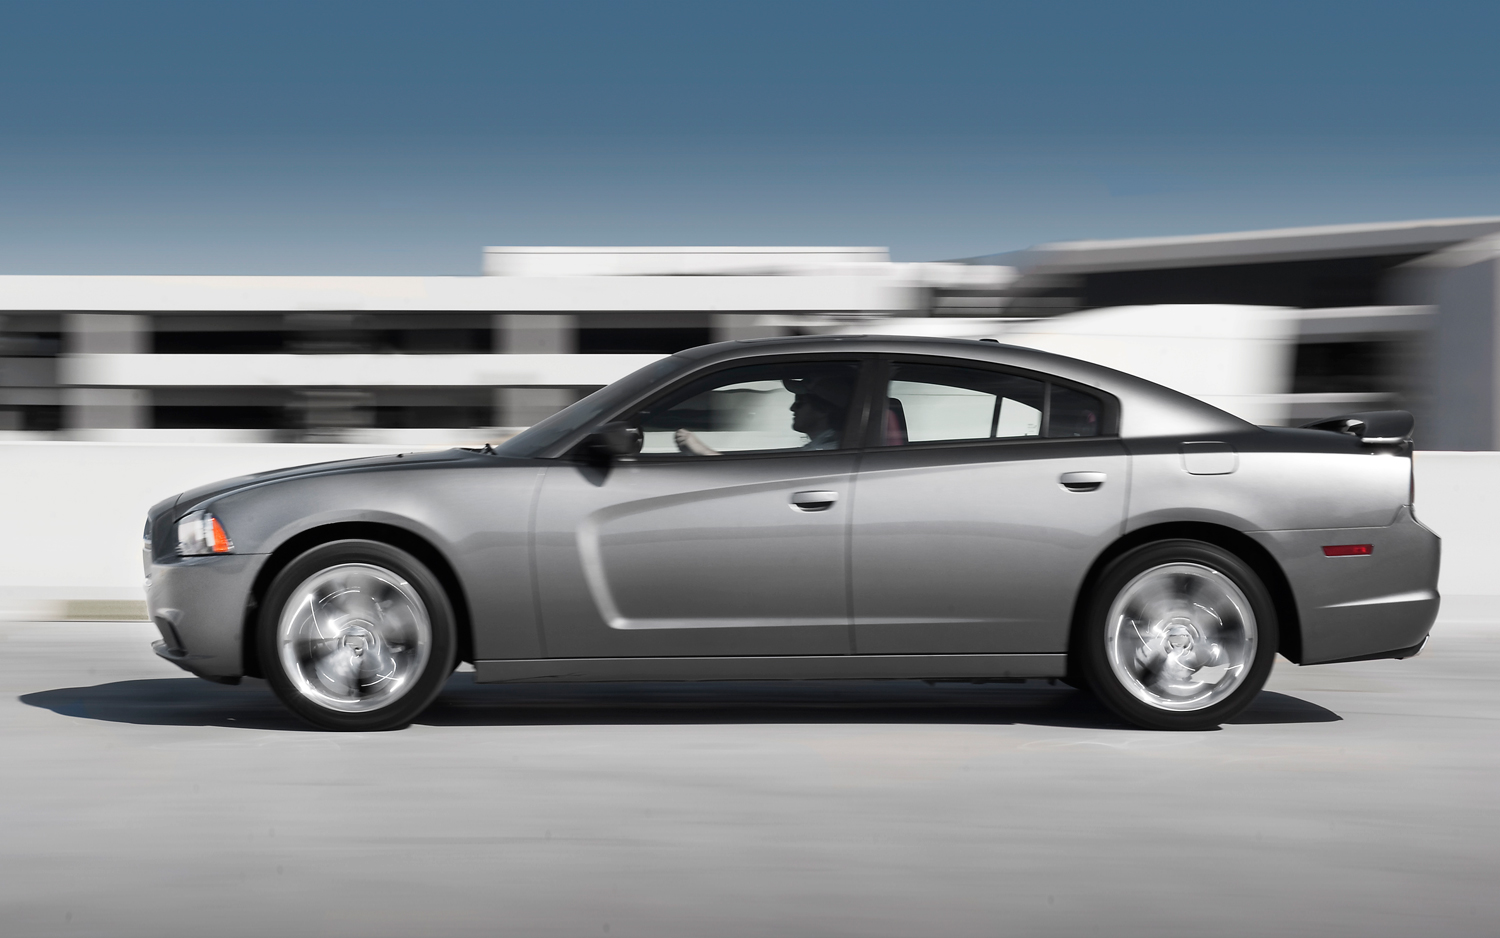 2012 dodge charger image 13